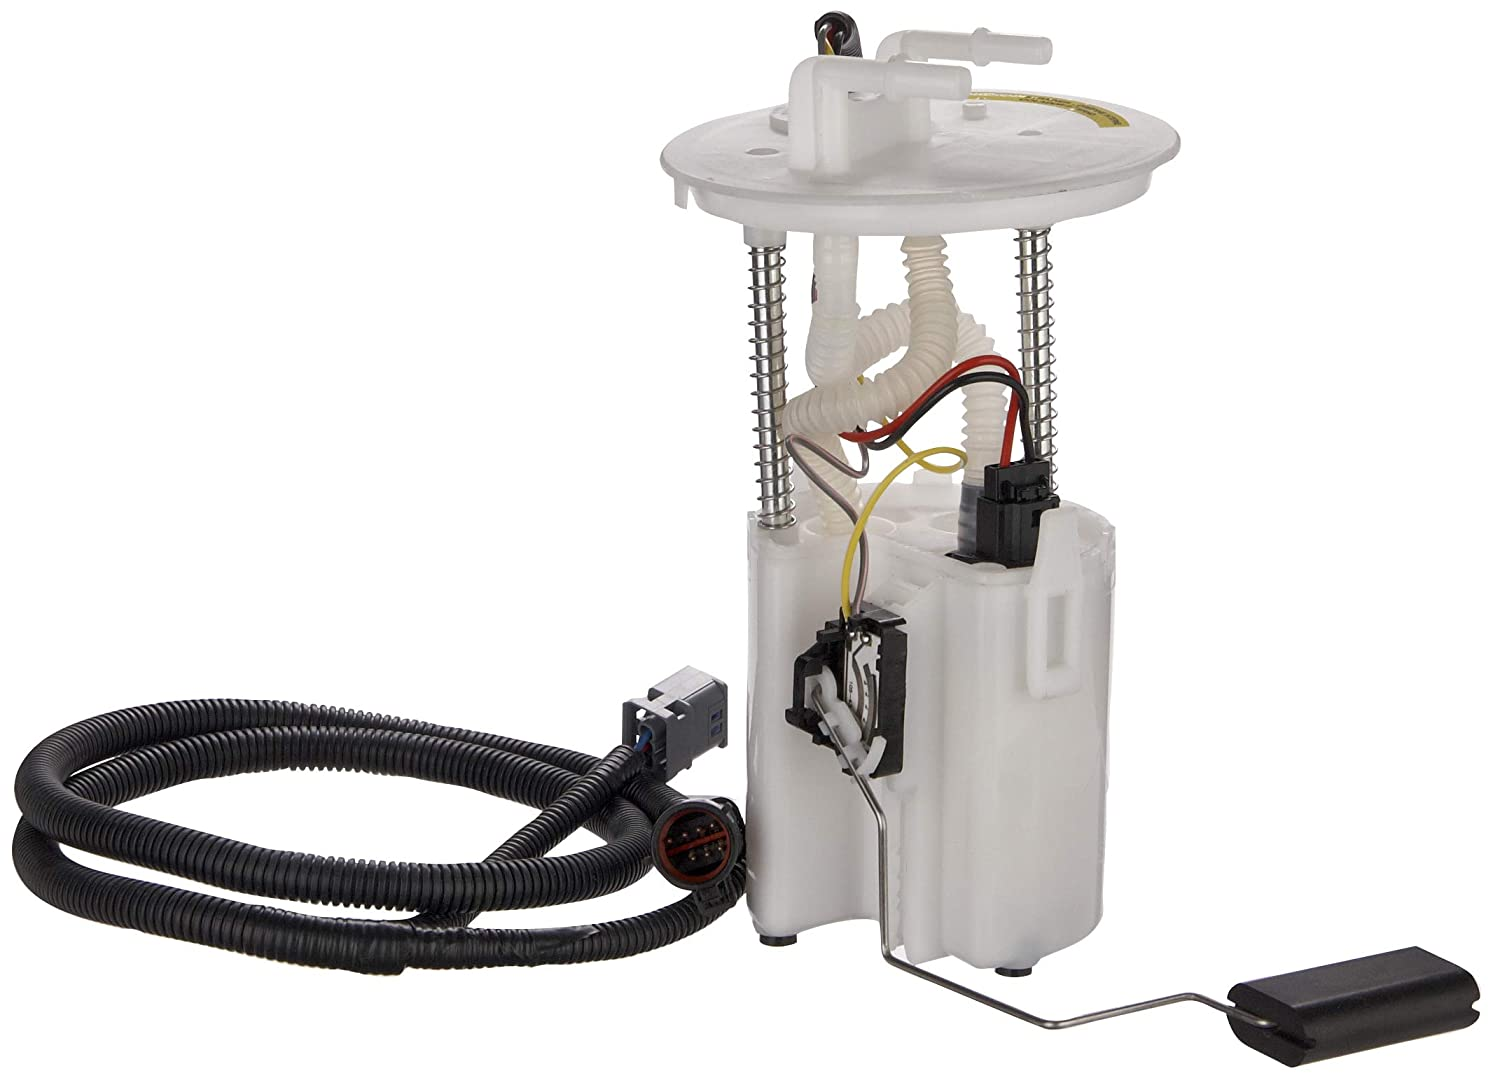 Spectra Premium Sp2290m Fuel Pump Module Automotive 2002 Ford Windstar Filter Location